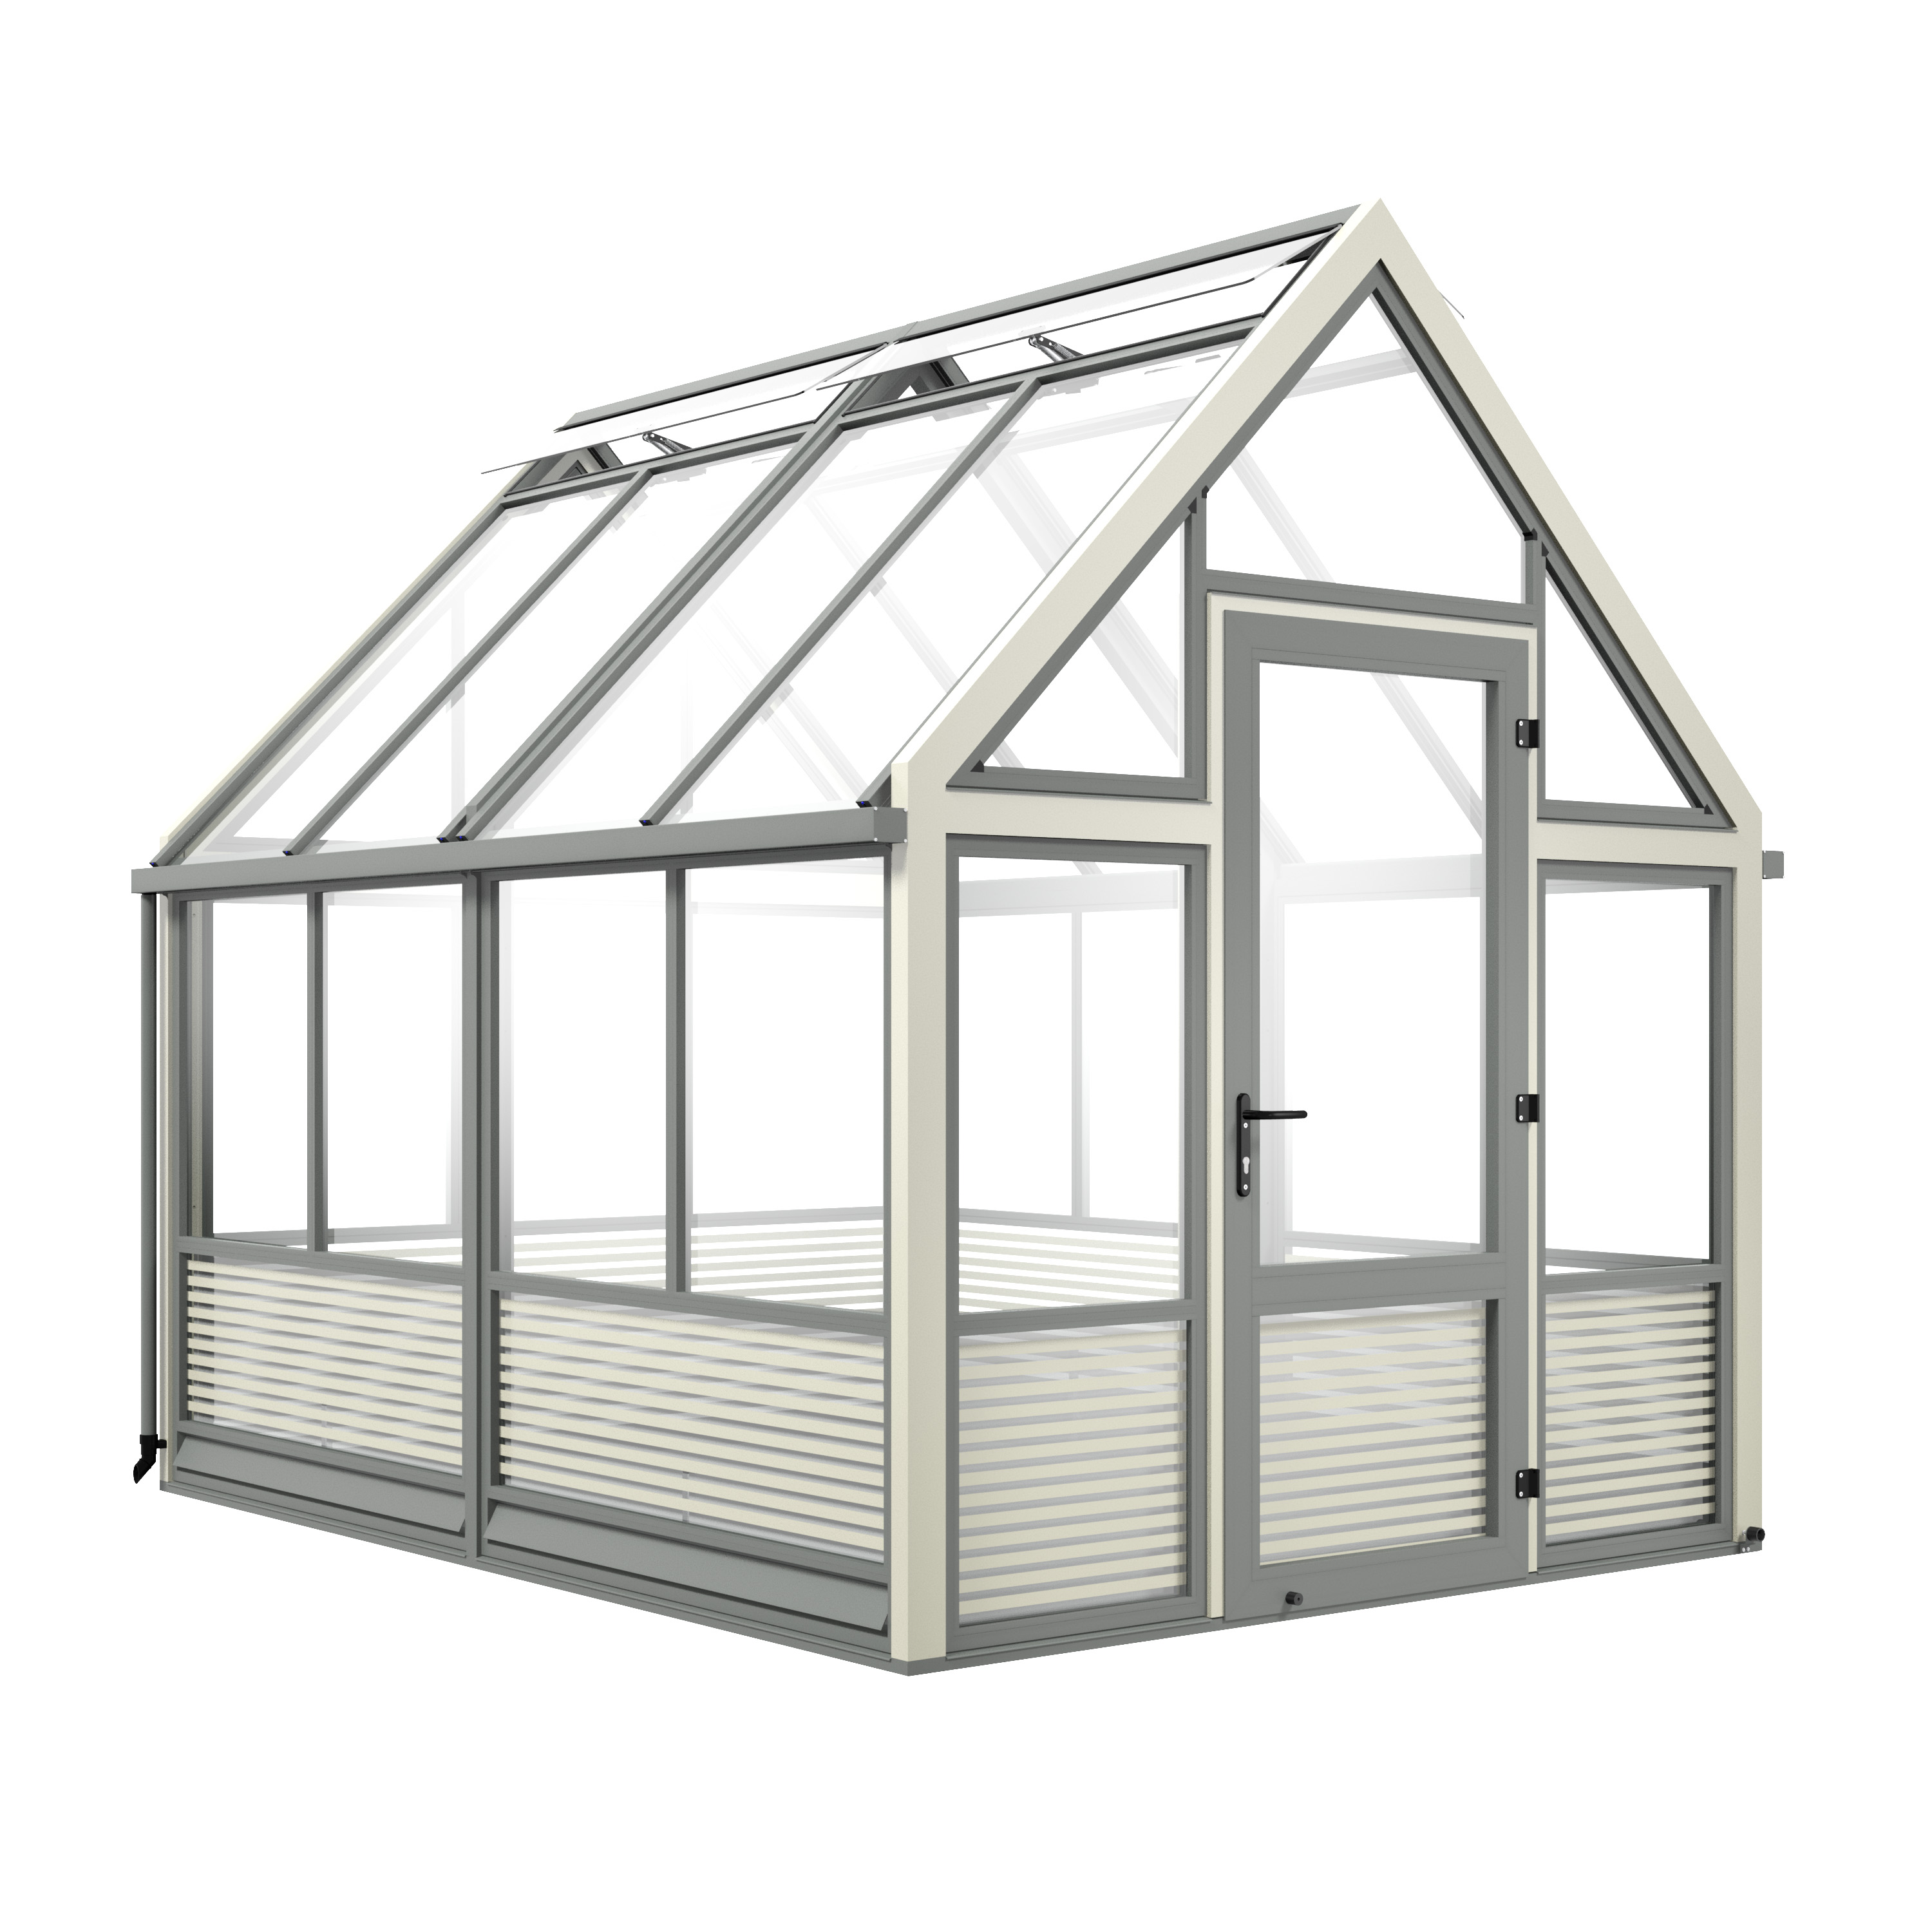 greenhouse_offer_two